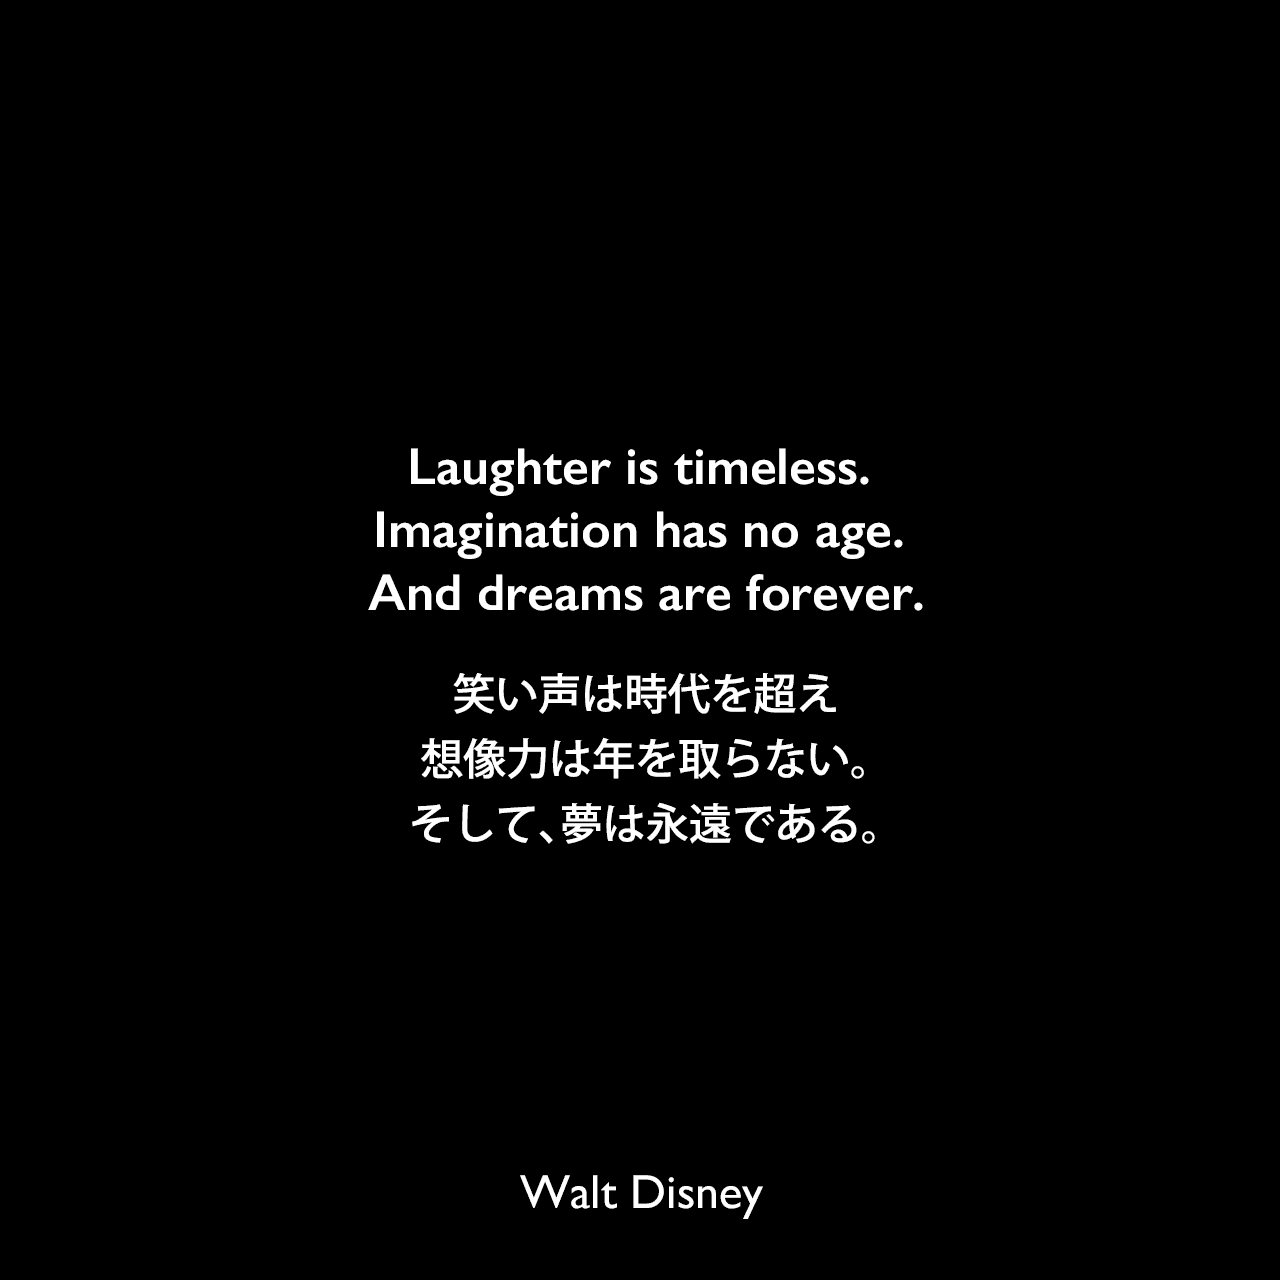 Laughter is timeless. Imagination has no age. And dreams are forever.笑い声は時代を超え、想像力は年を取らない。そして、夢は永遠である。Walt Disney